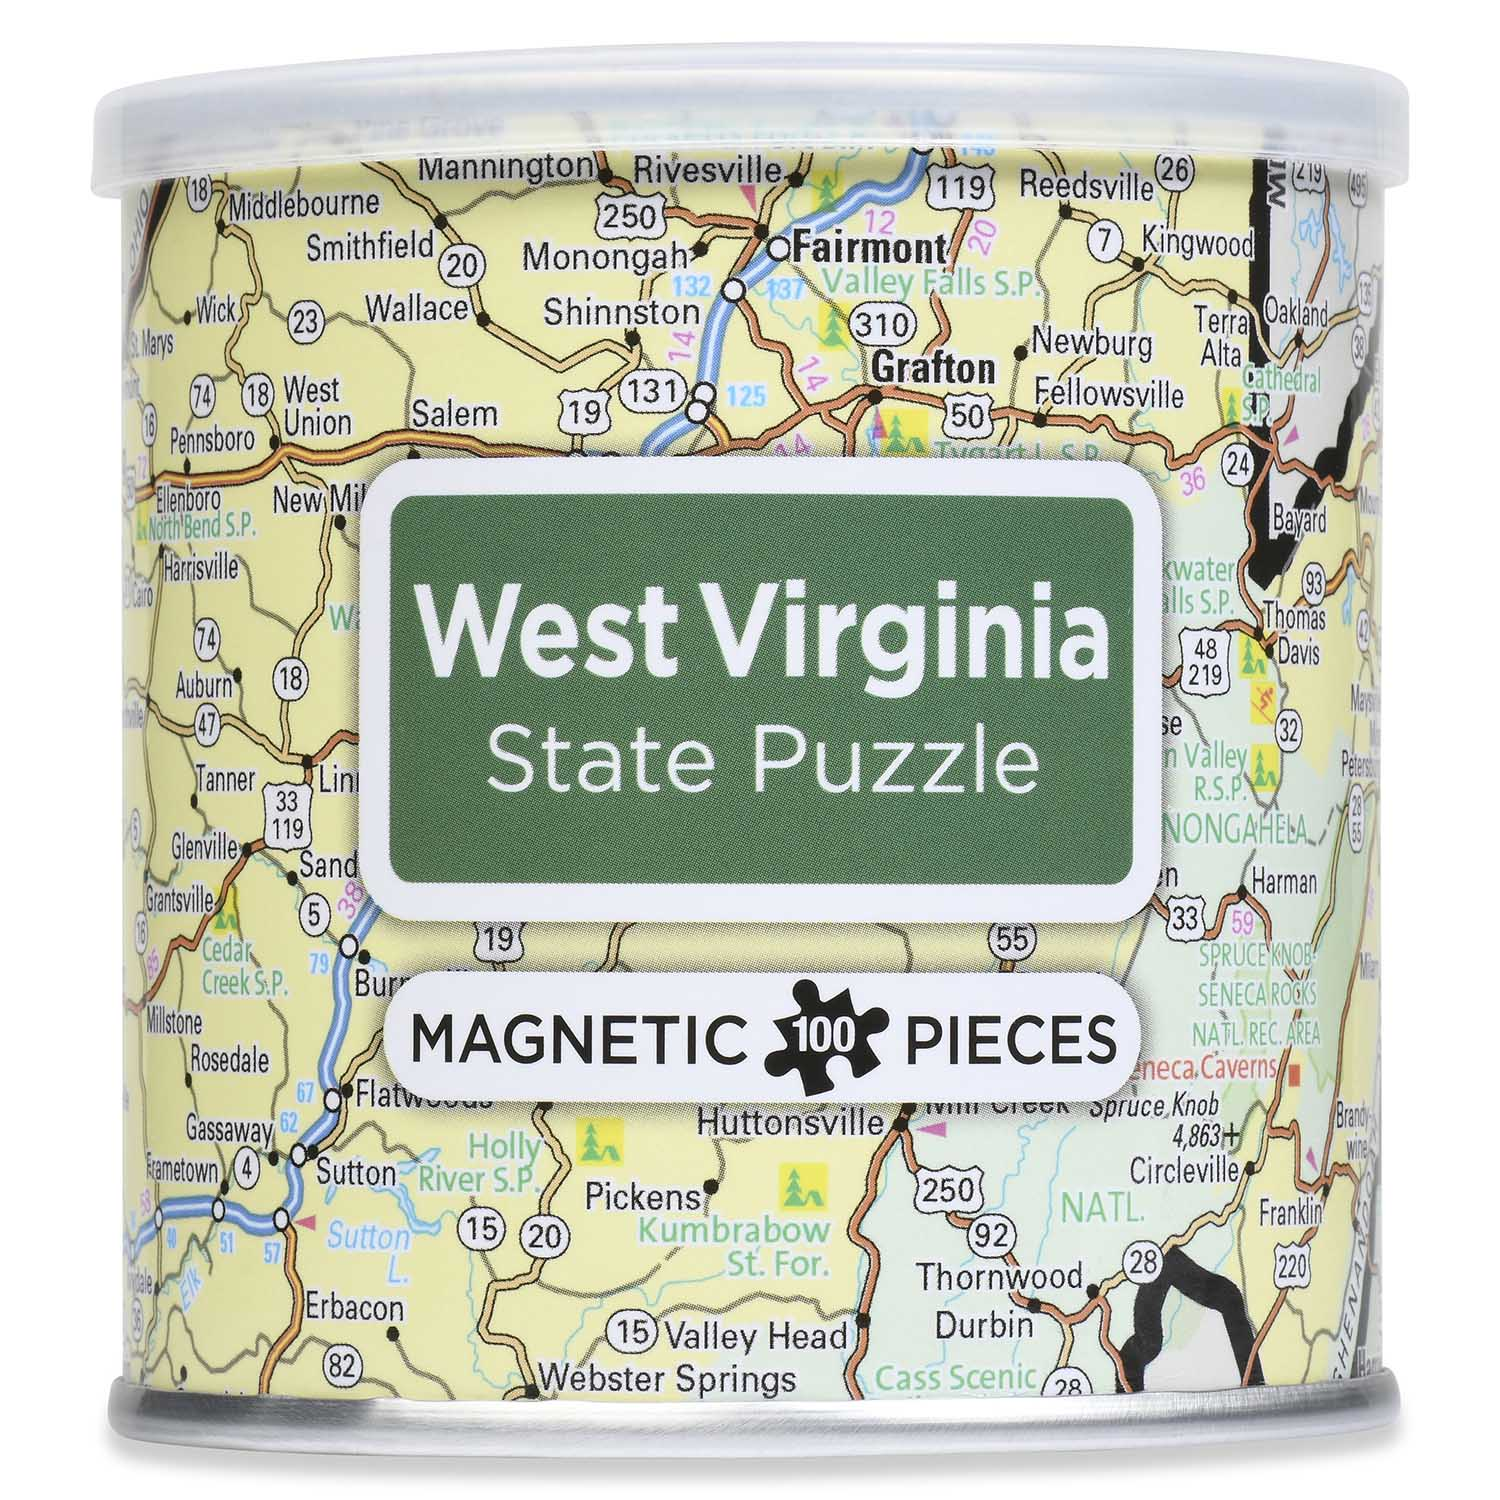 City Magnetic Puzzle West Virginia Cities Jigsaw Puzzle